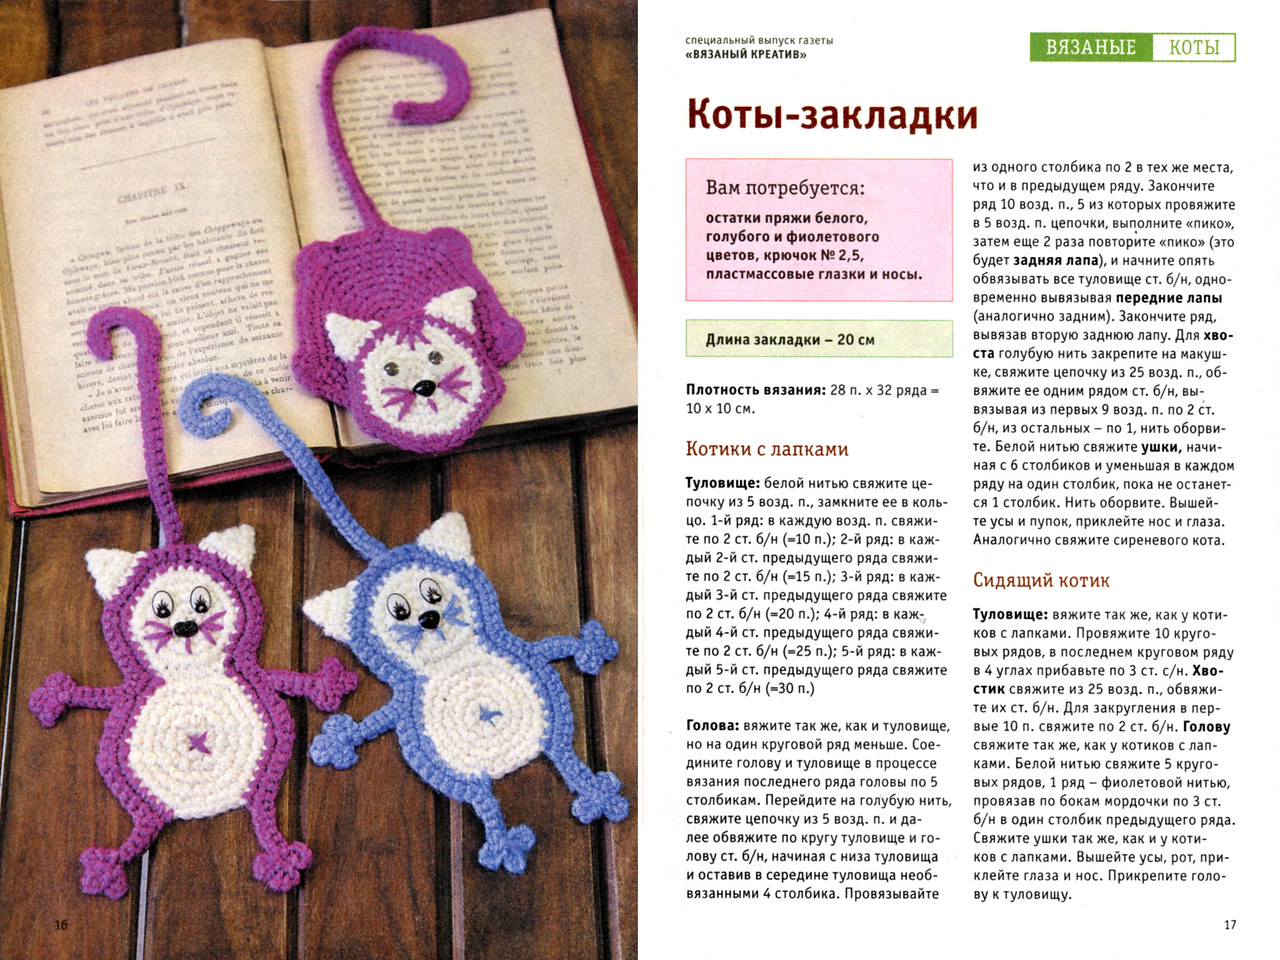 Knitted bookmarks for books a hook of the scheme, description, video mk - 26 options u043au0440u044eu0447u043au043eu043c Postila